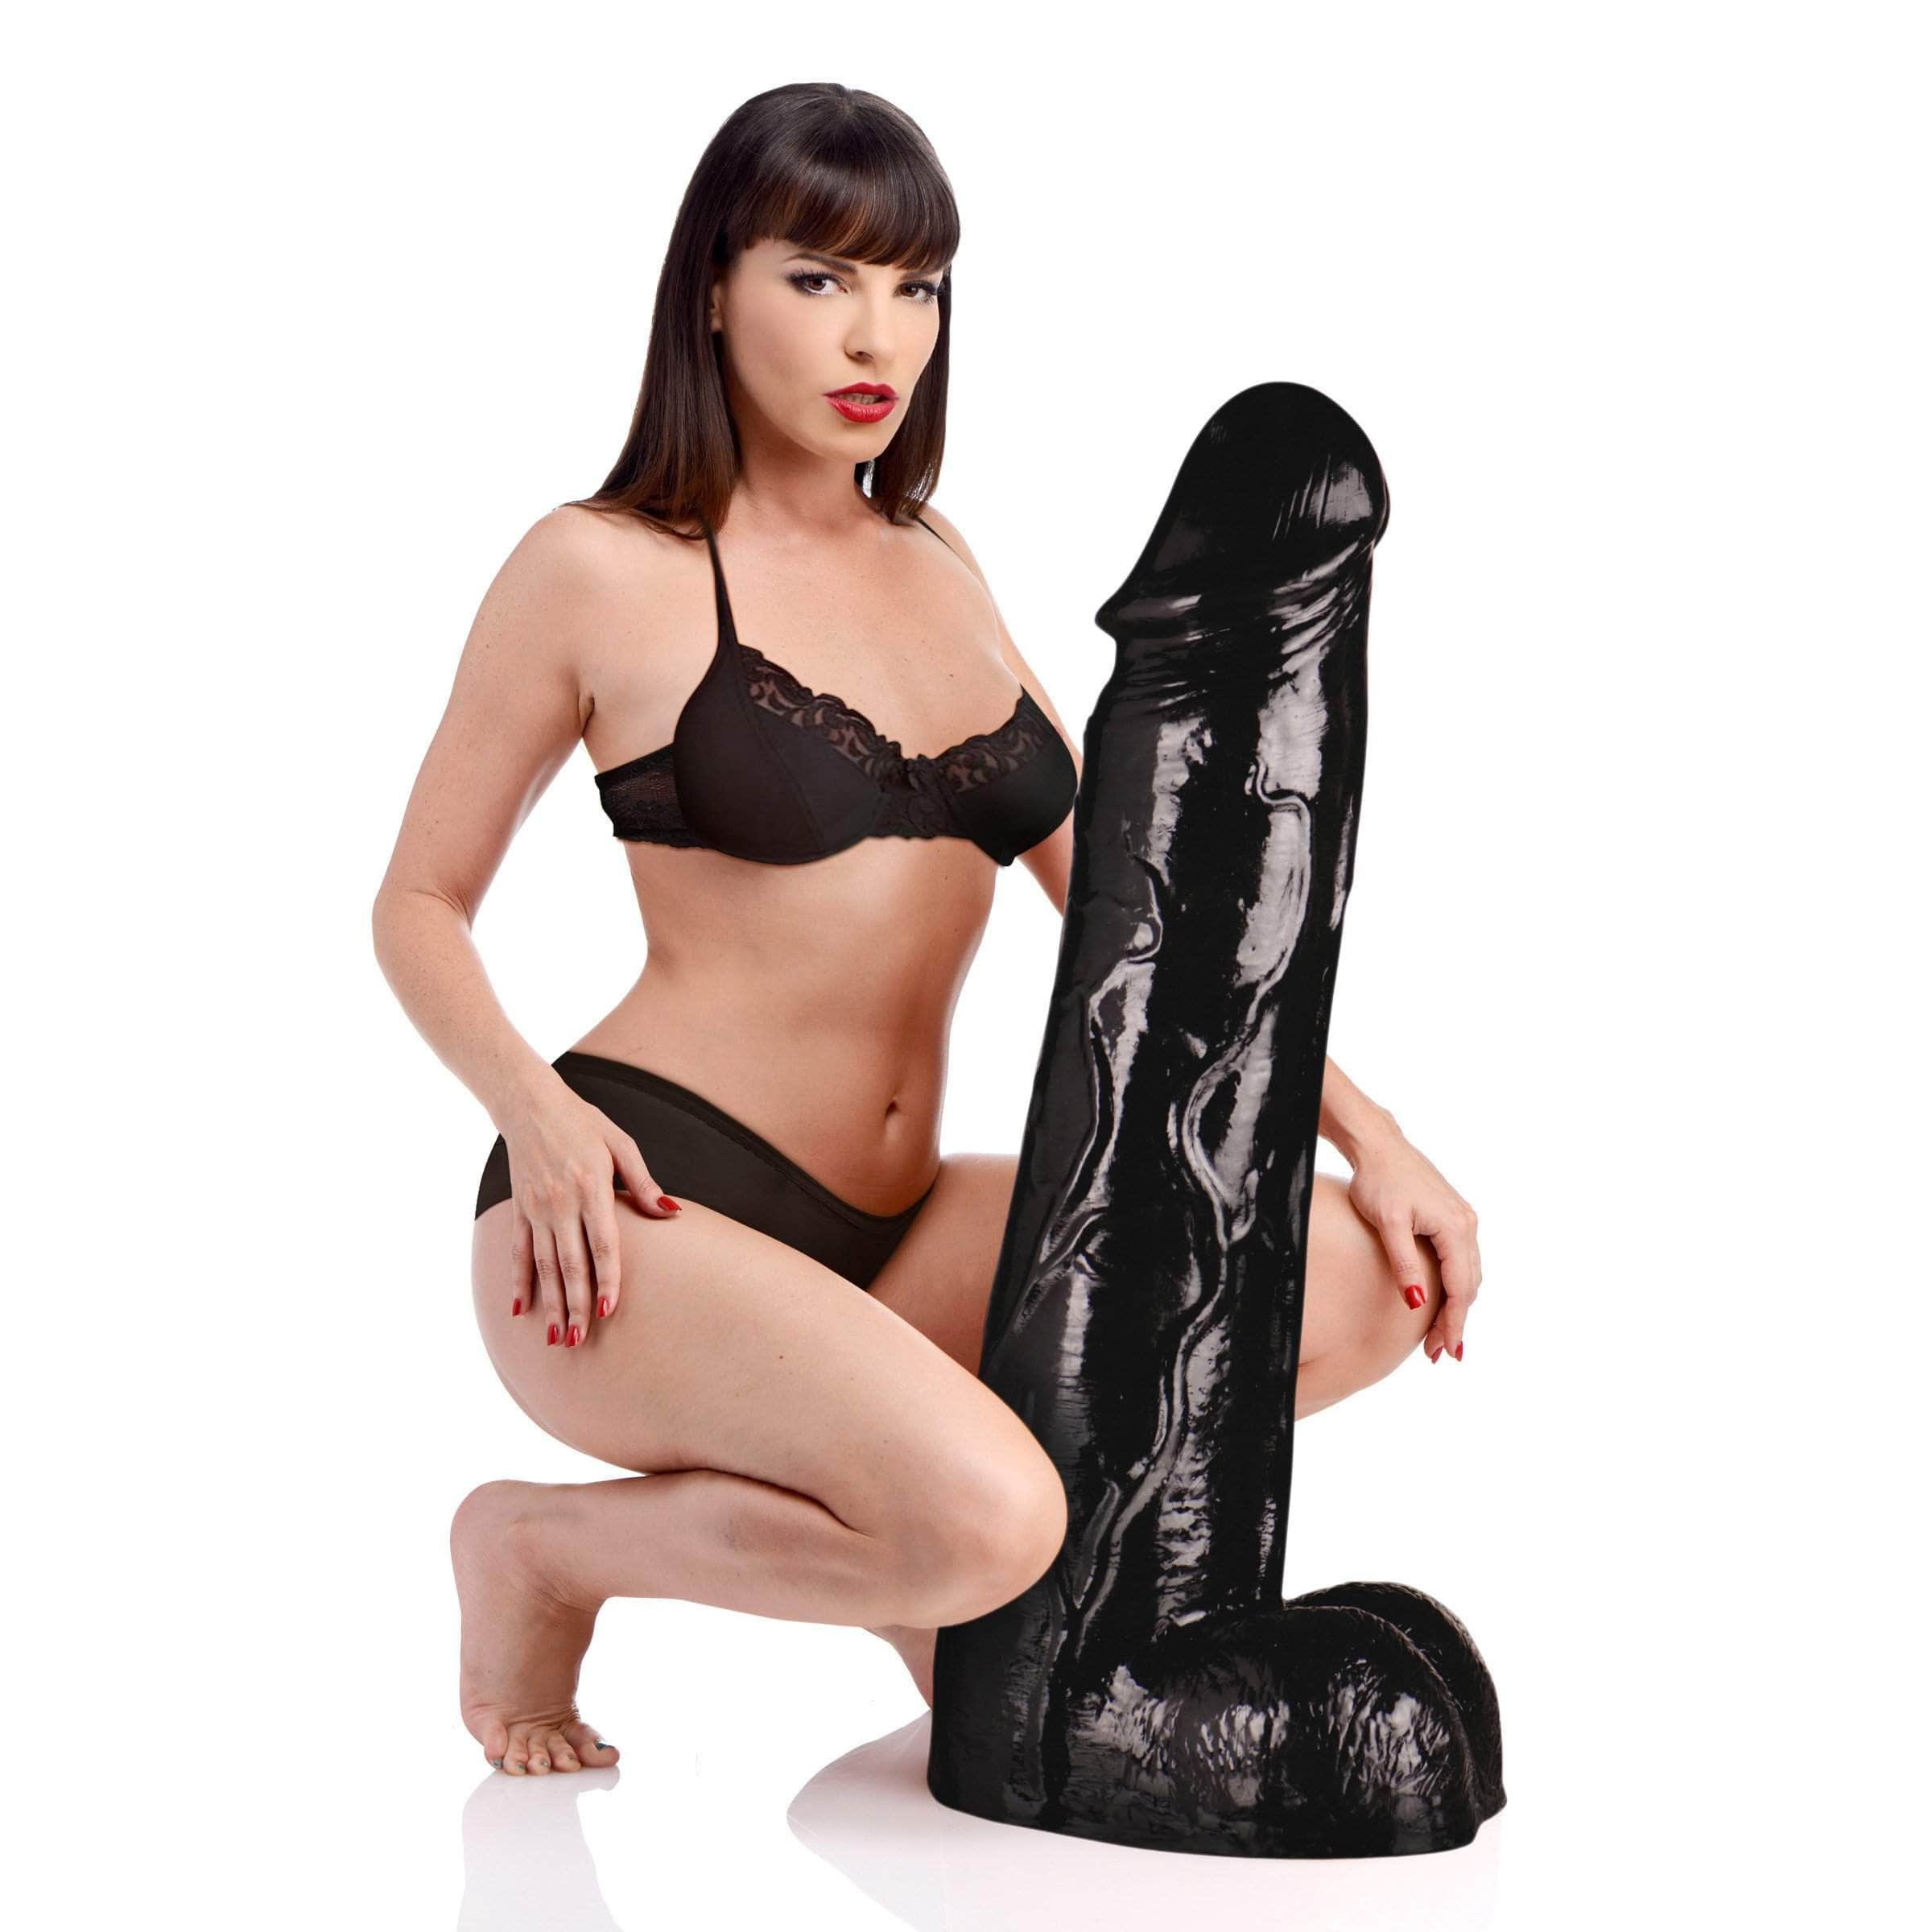 Moby Huge 3 Foot Tall Super Dildo - Black